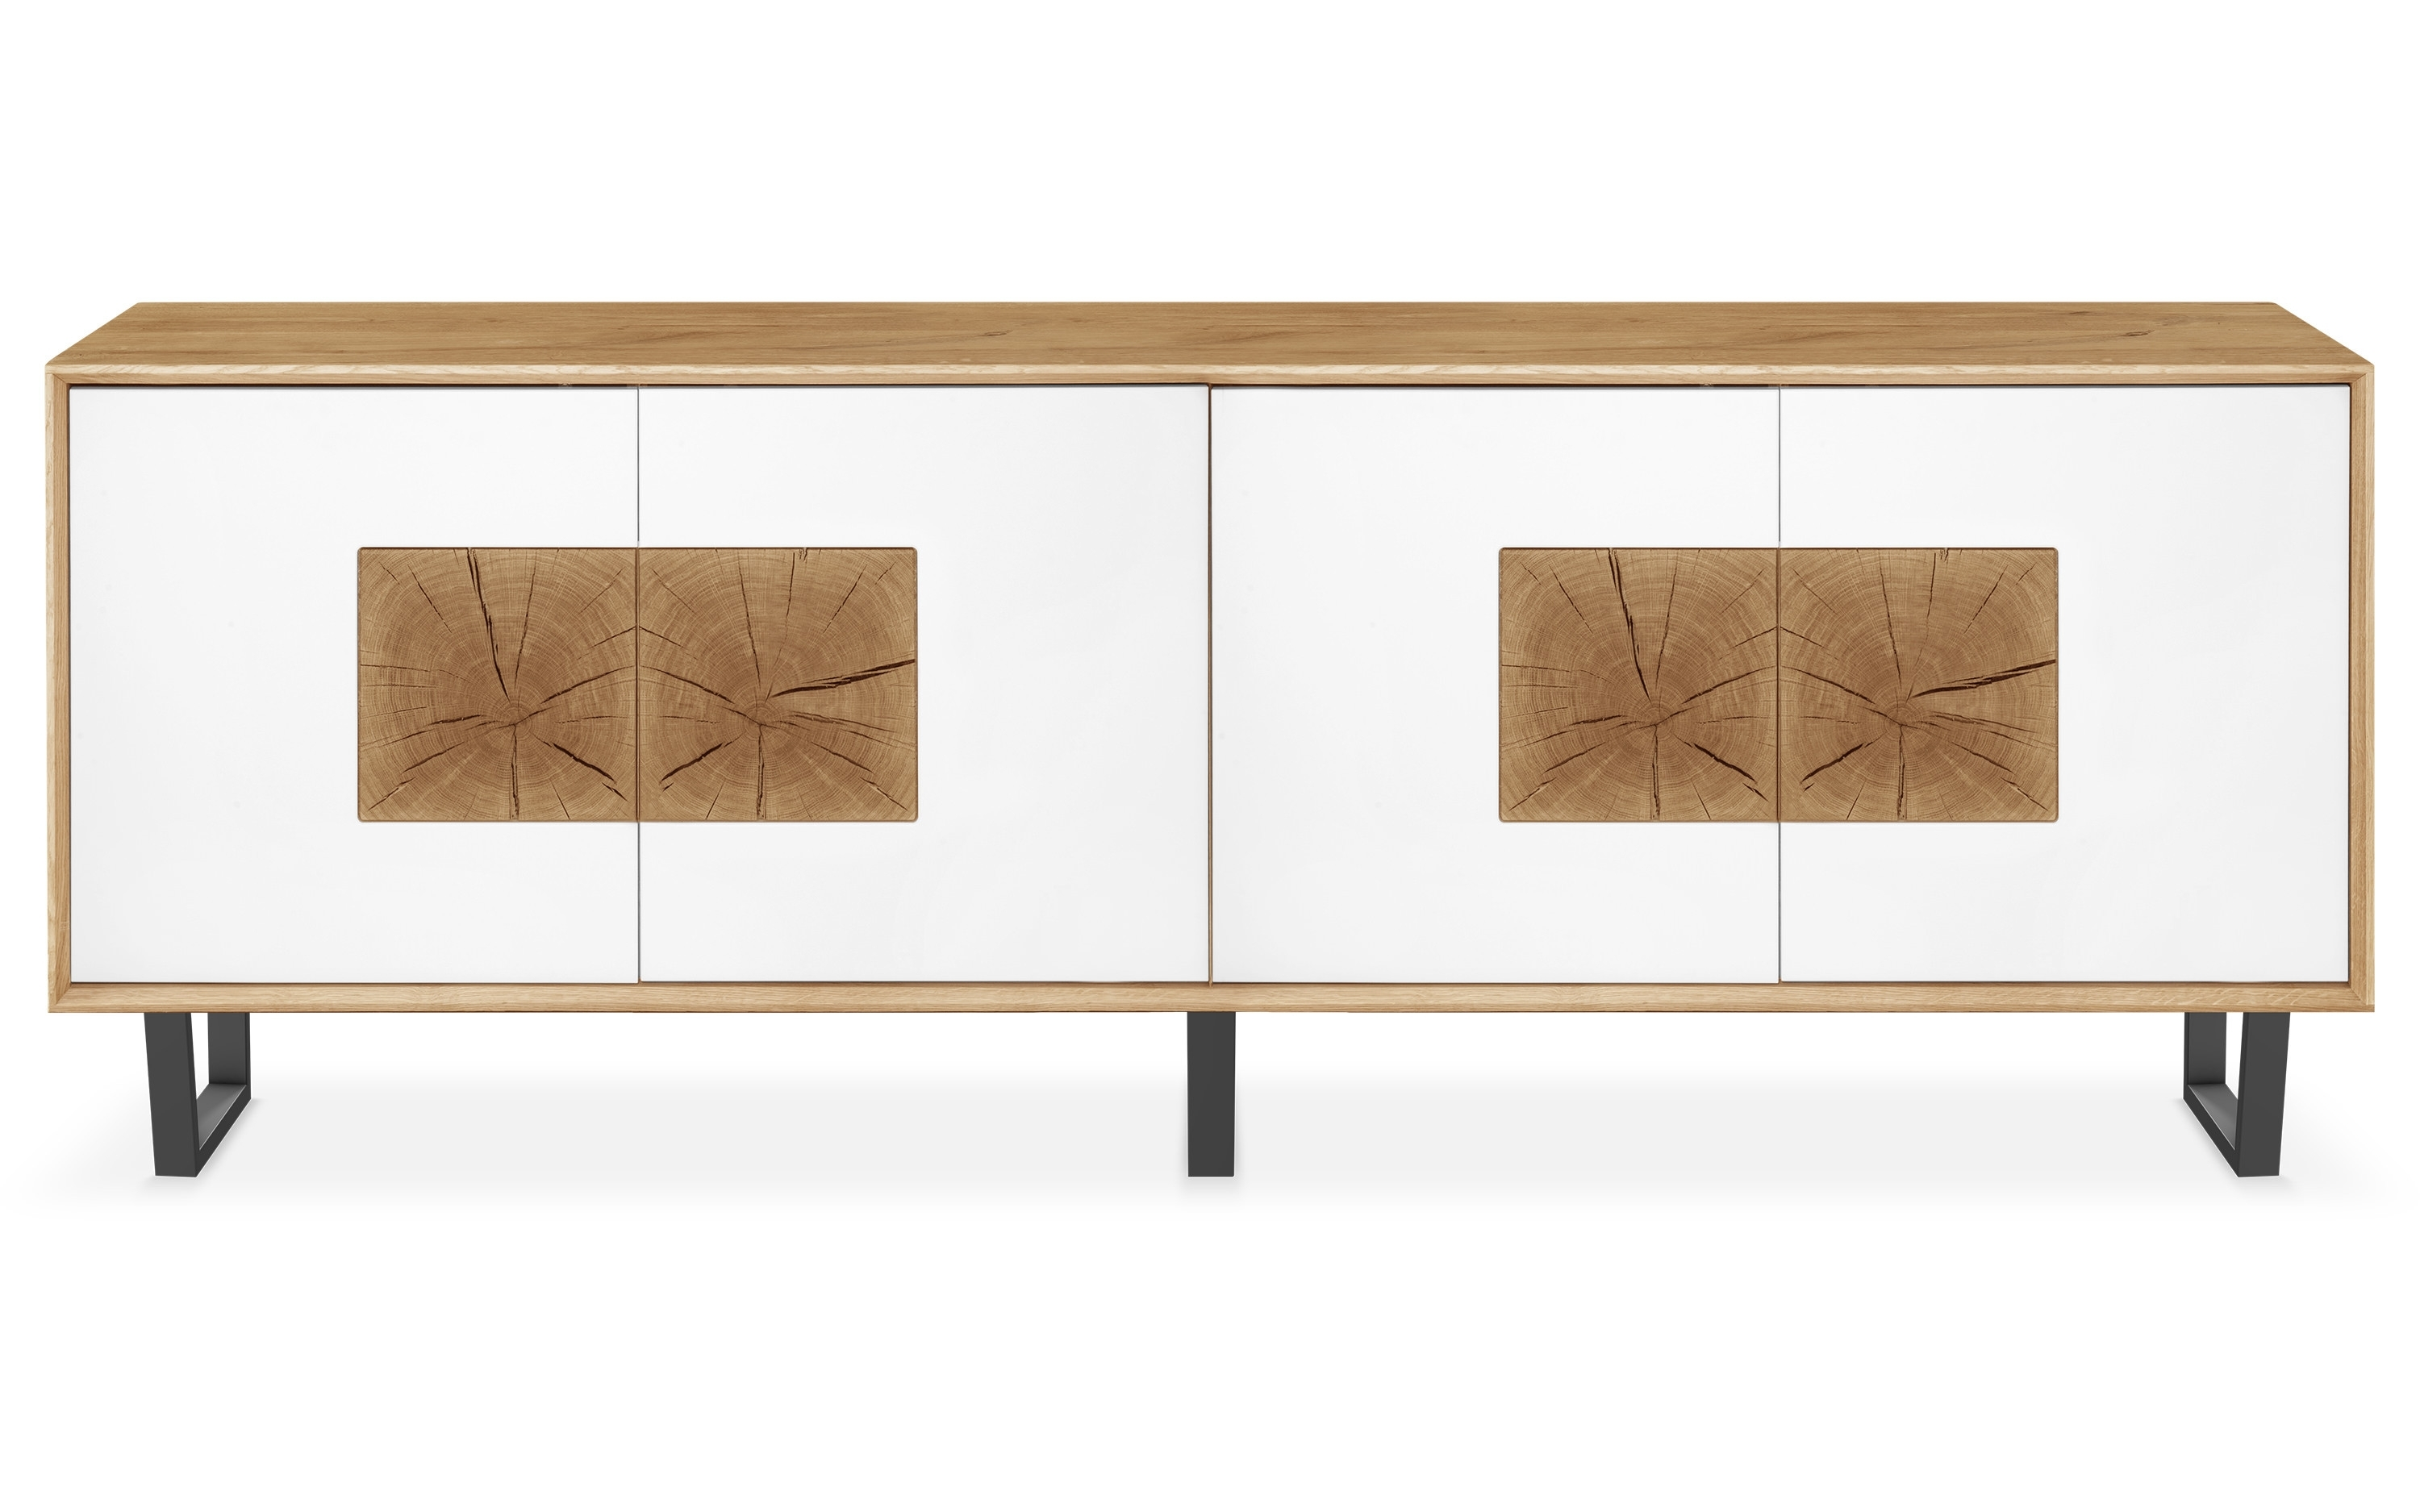 Clemence Richard | Modena | 4 Door Large Sideboard | Kontenta inside Metal Refinement 4 Door Sideboards (Image 11 of 30)